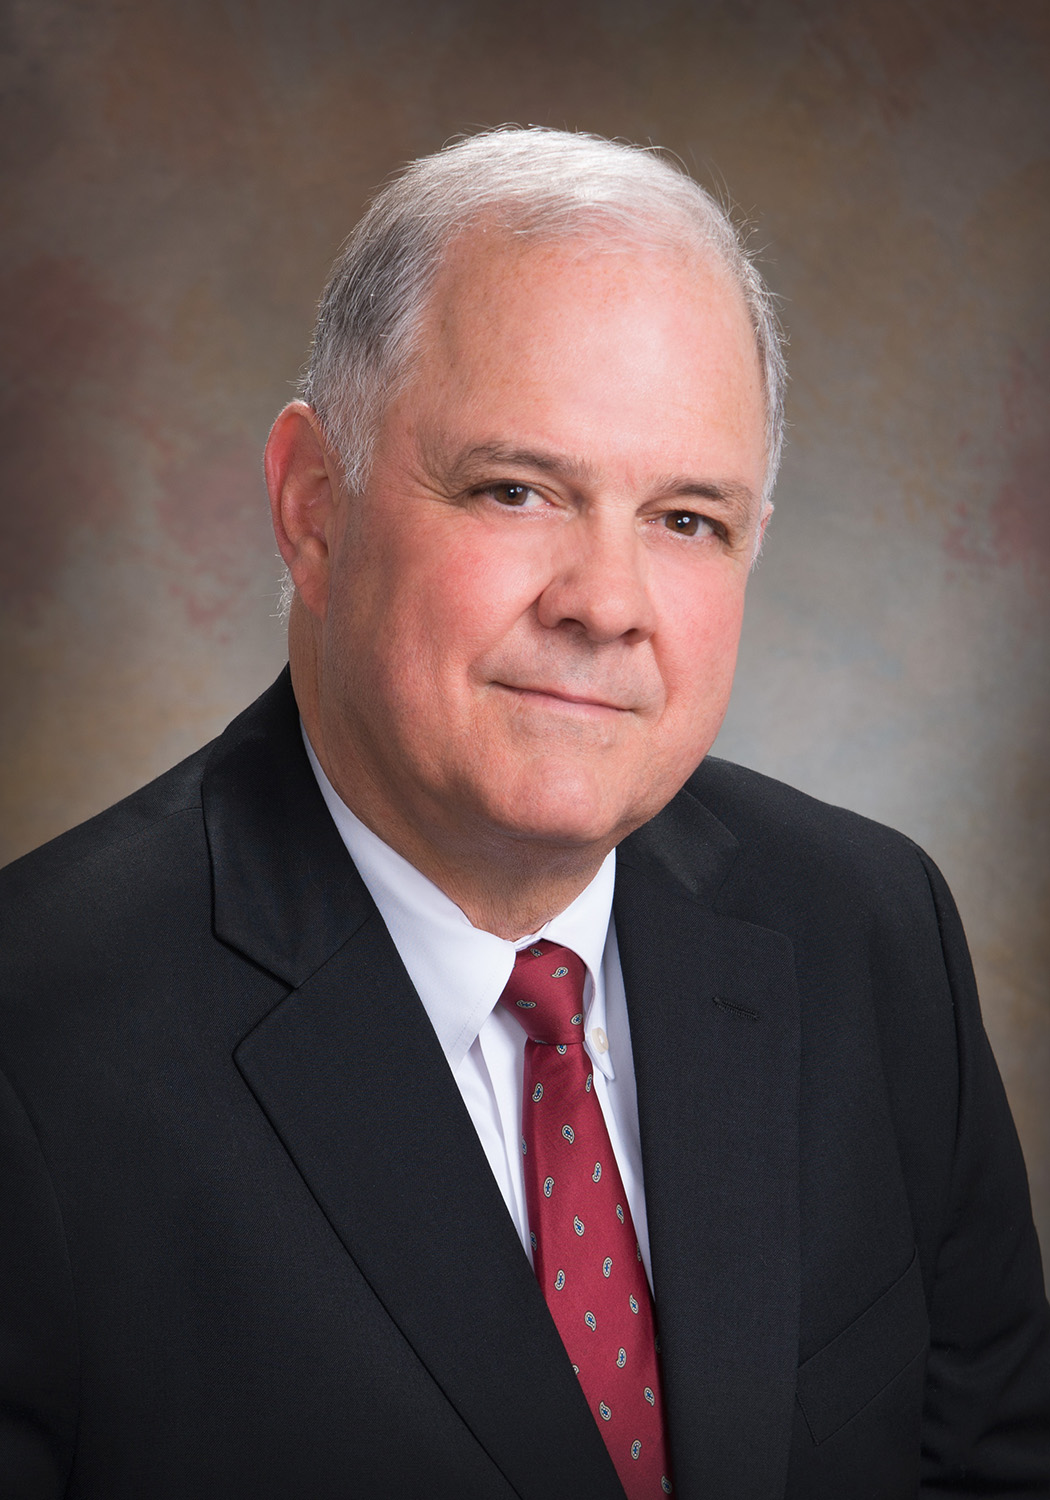 Mayor Ted Brandvold